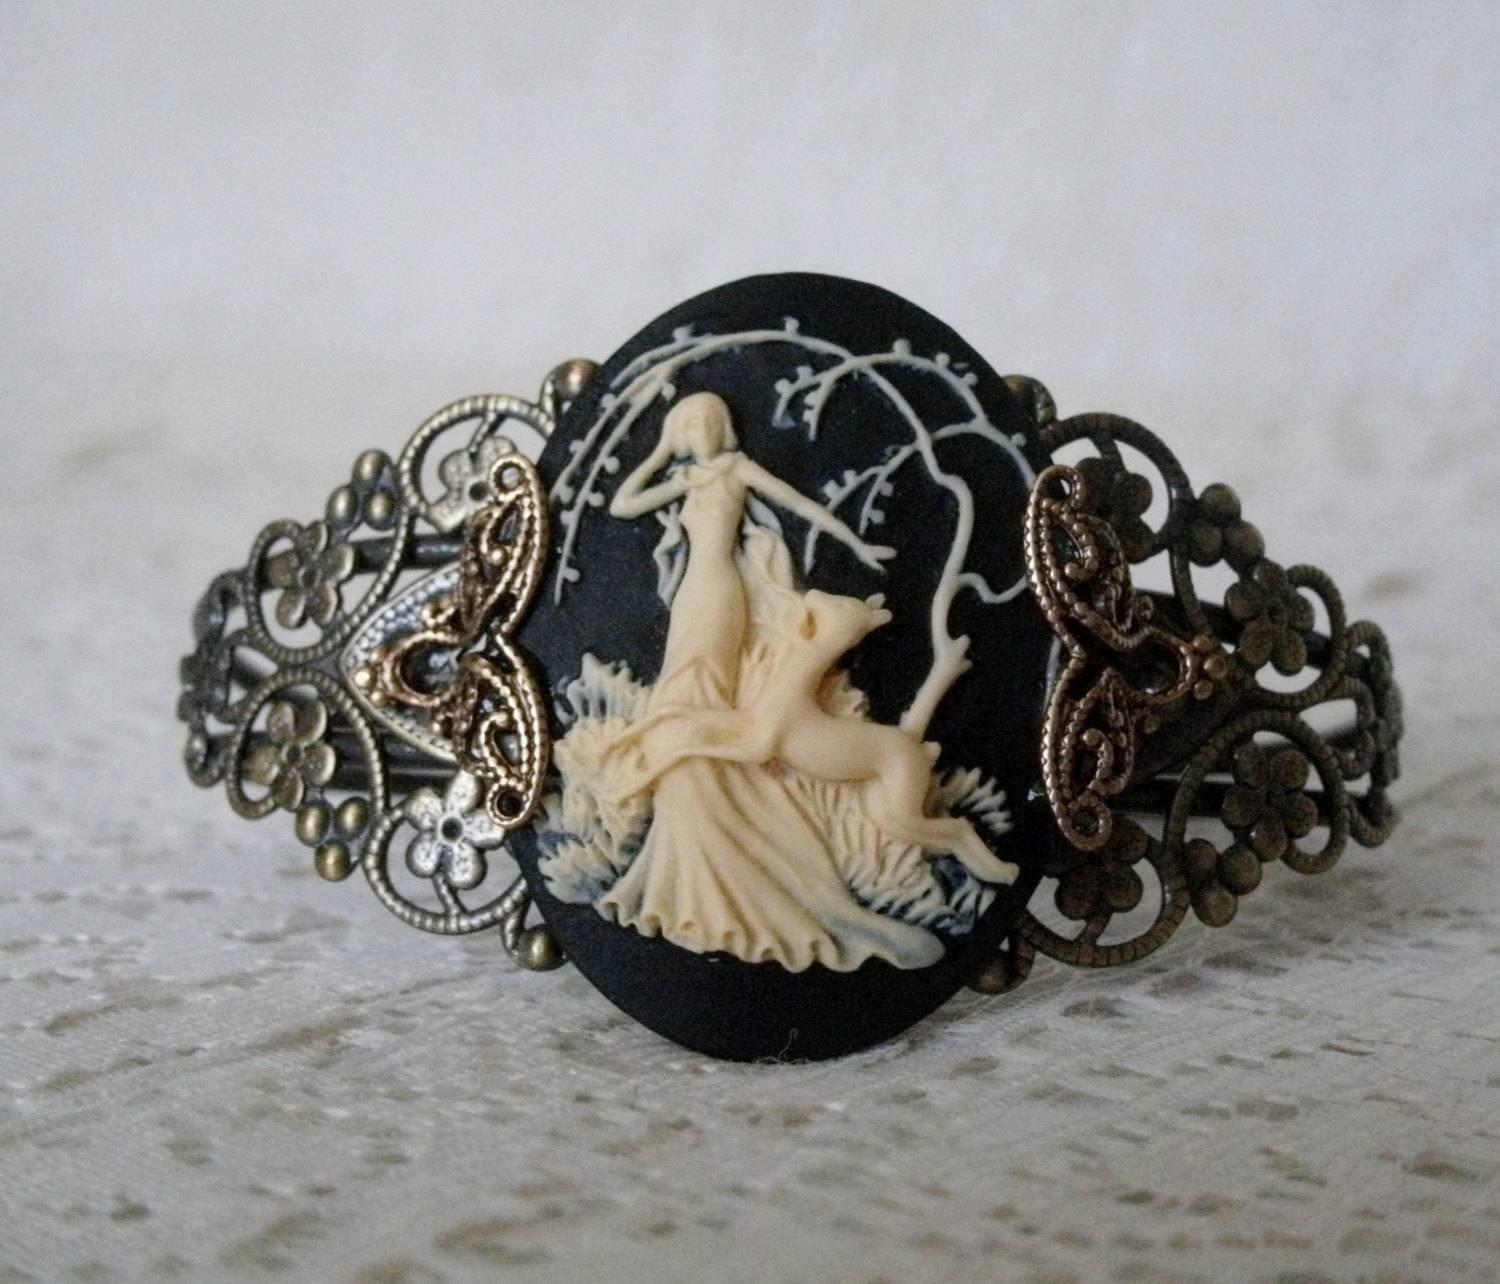 Goddess Diana Cuff Bracelet Wiccan Jewelry Pagan Jewelry With Regard To Wiccan Engagement Rings (View 12 of 15)